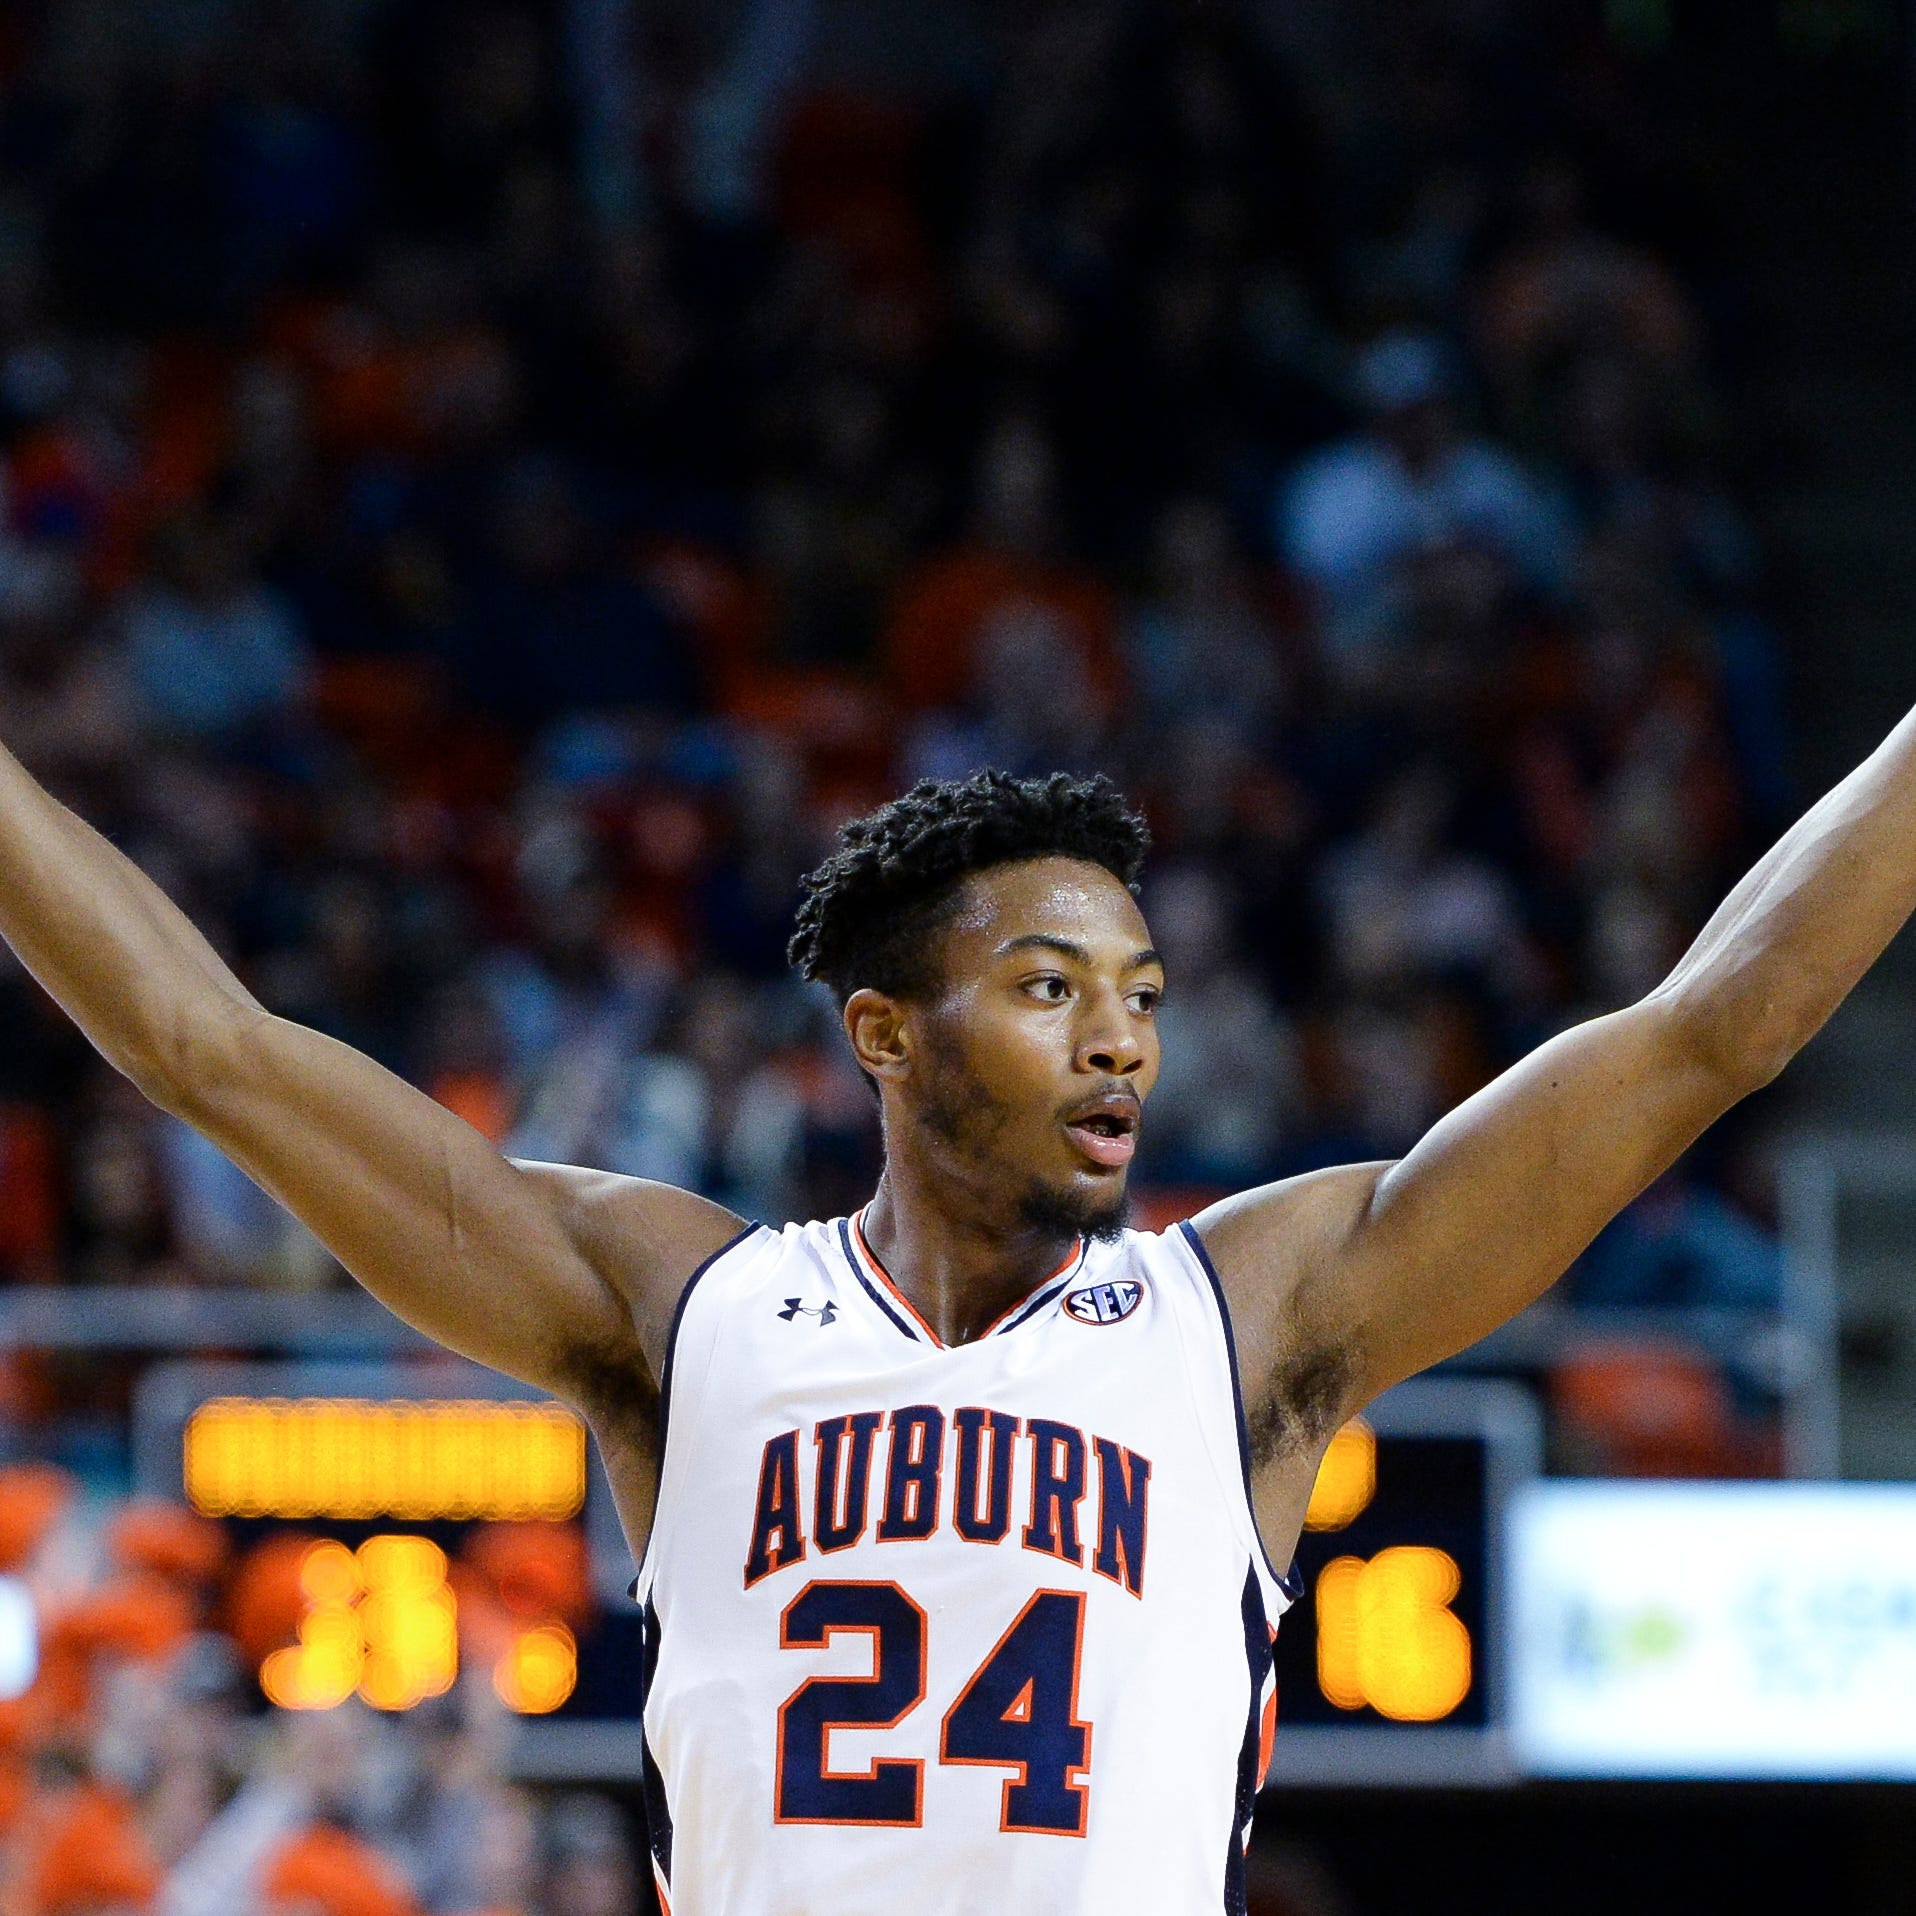 Where I ranked Auburn in the AP Top 25 Poll after lopsided wins over South Alabama, Washington